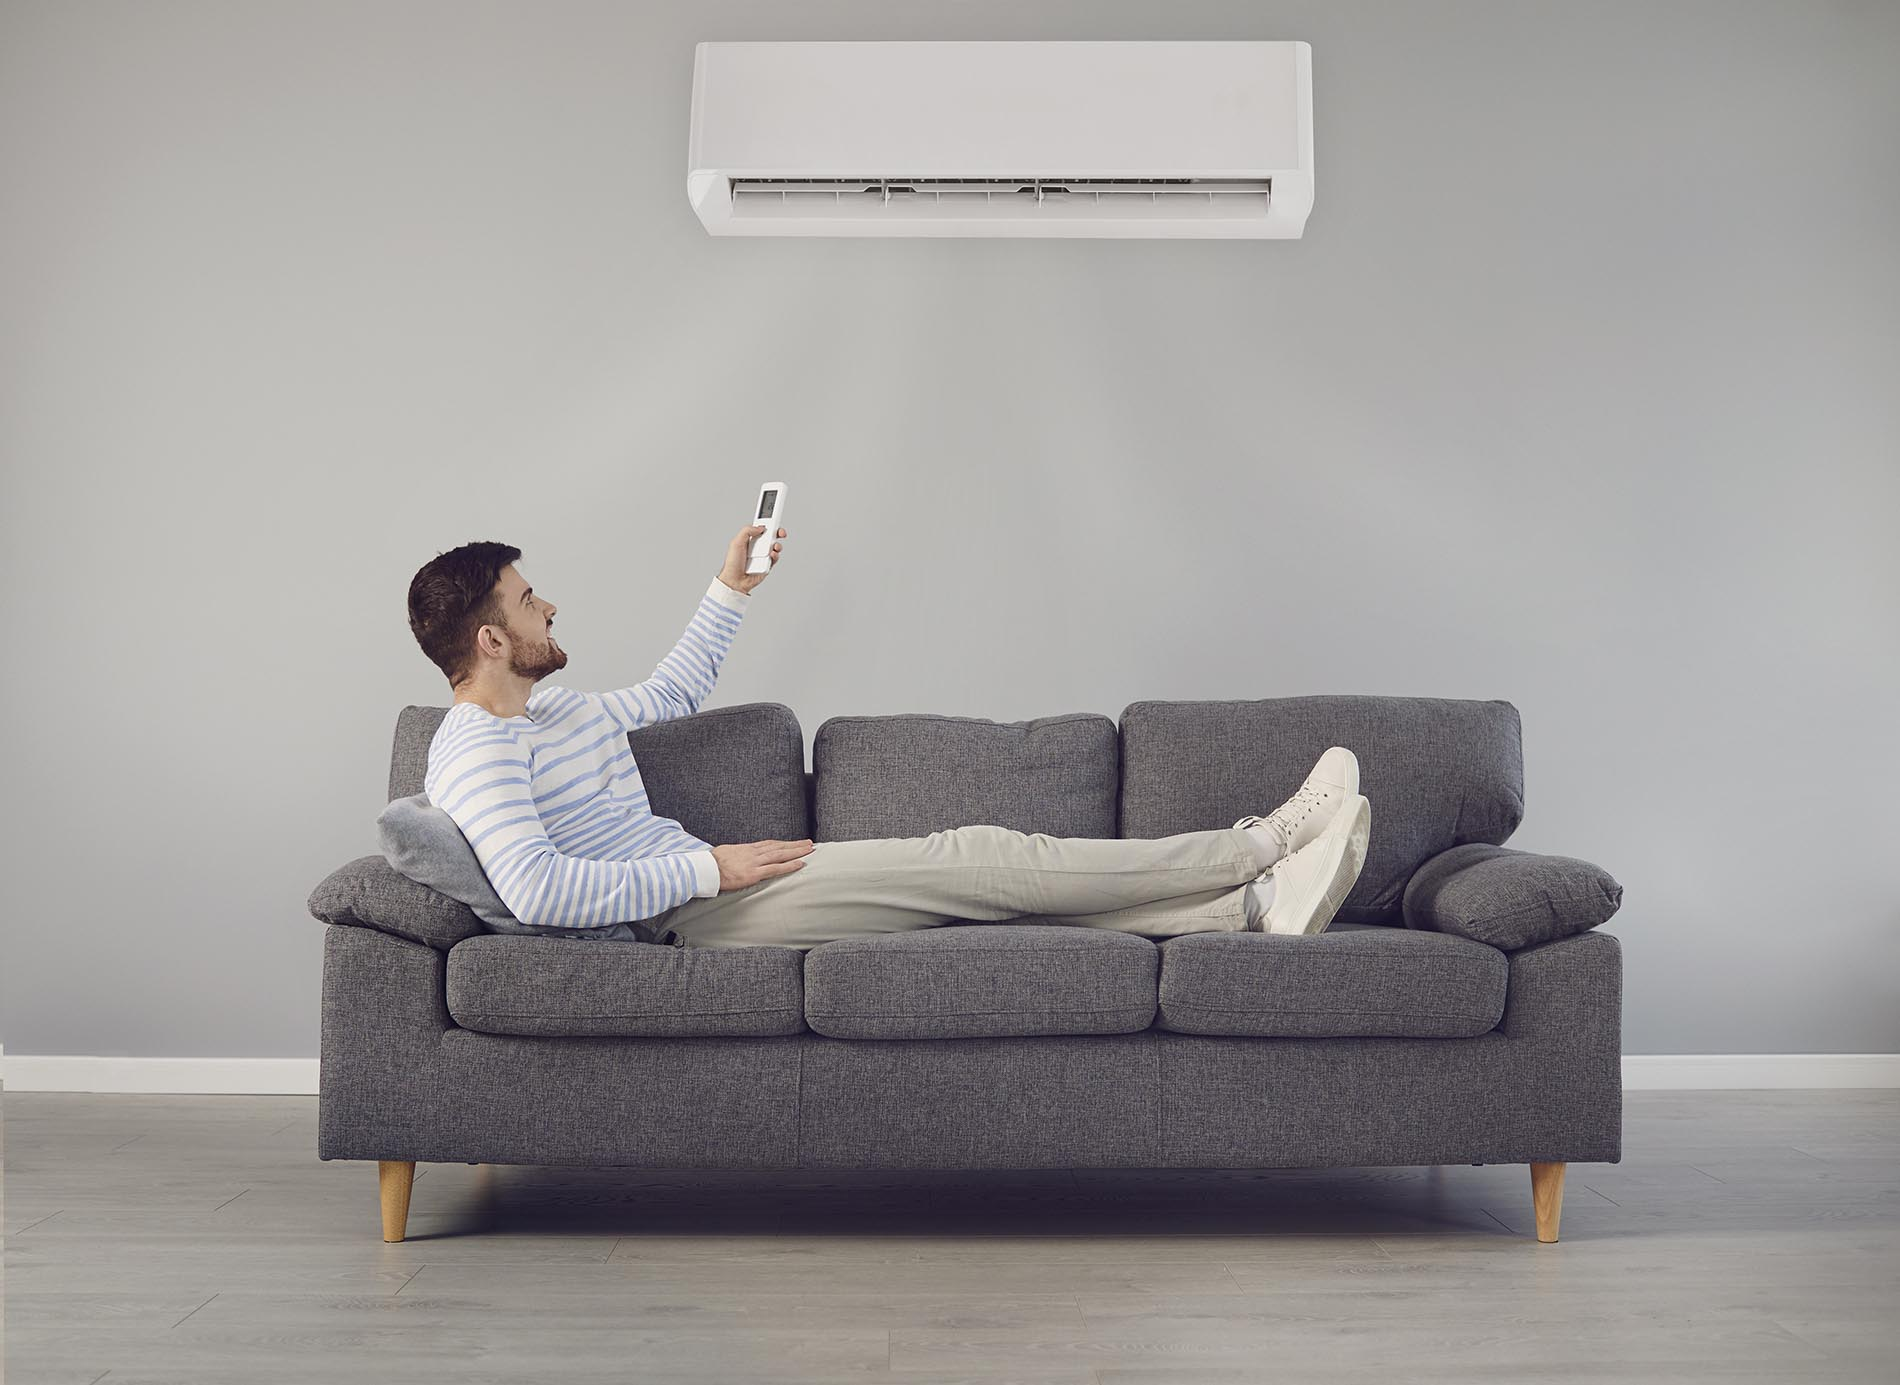 The young man turns on the air conditioner cools the air while sitting on the sofa in the room.